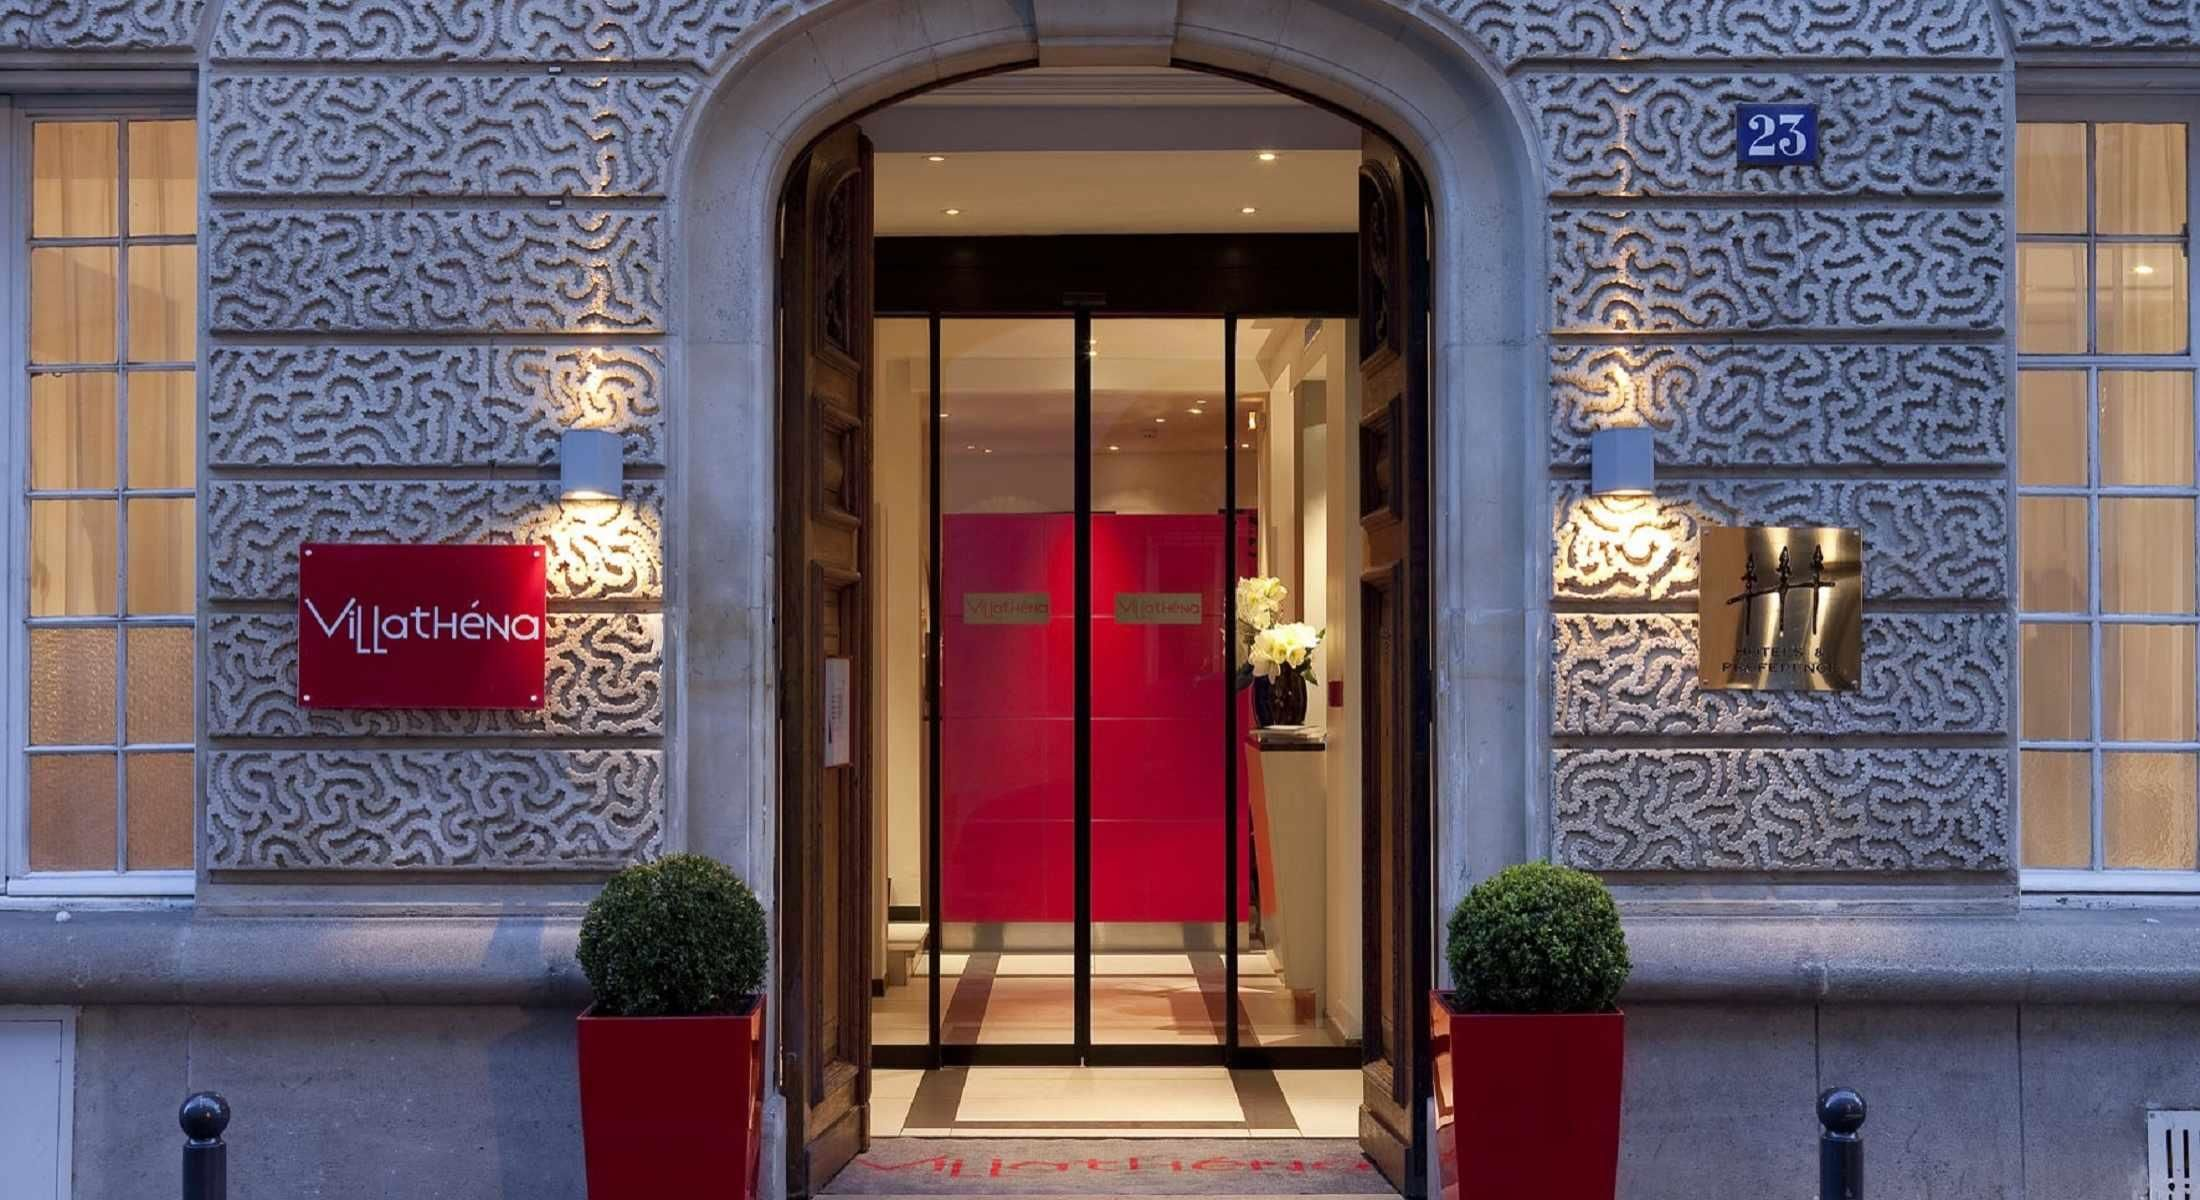 Hotel Villathena Paris Official Site 3 Star Hotel Paris 9th